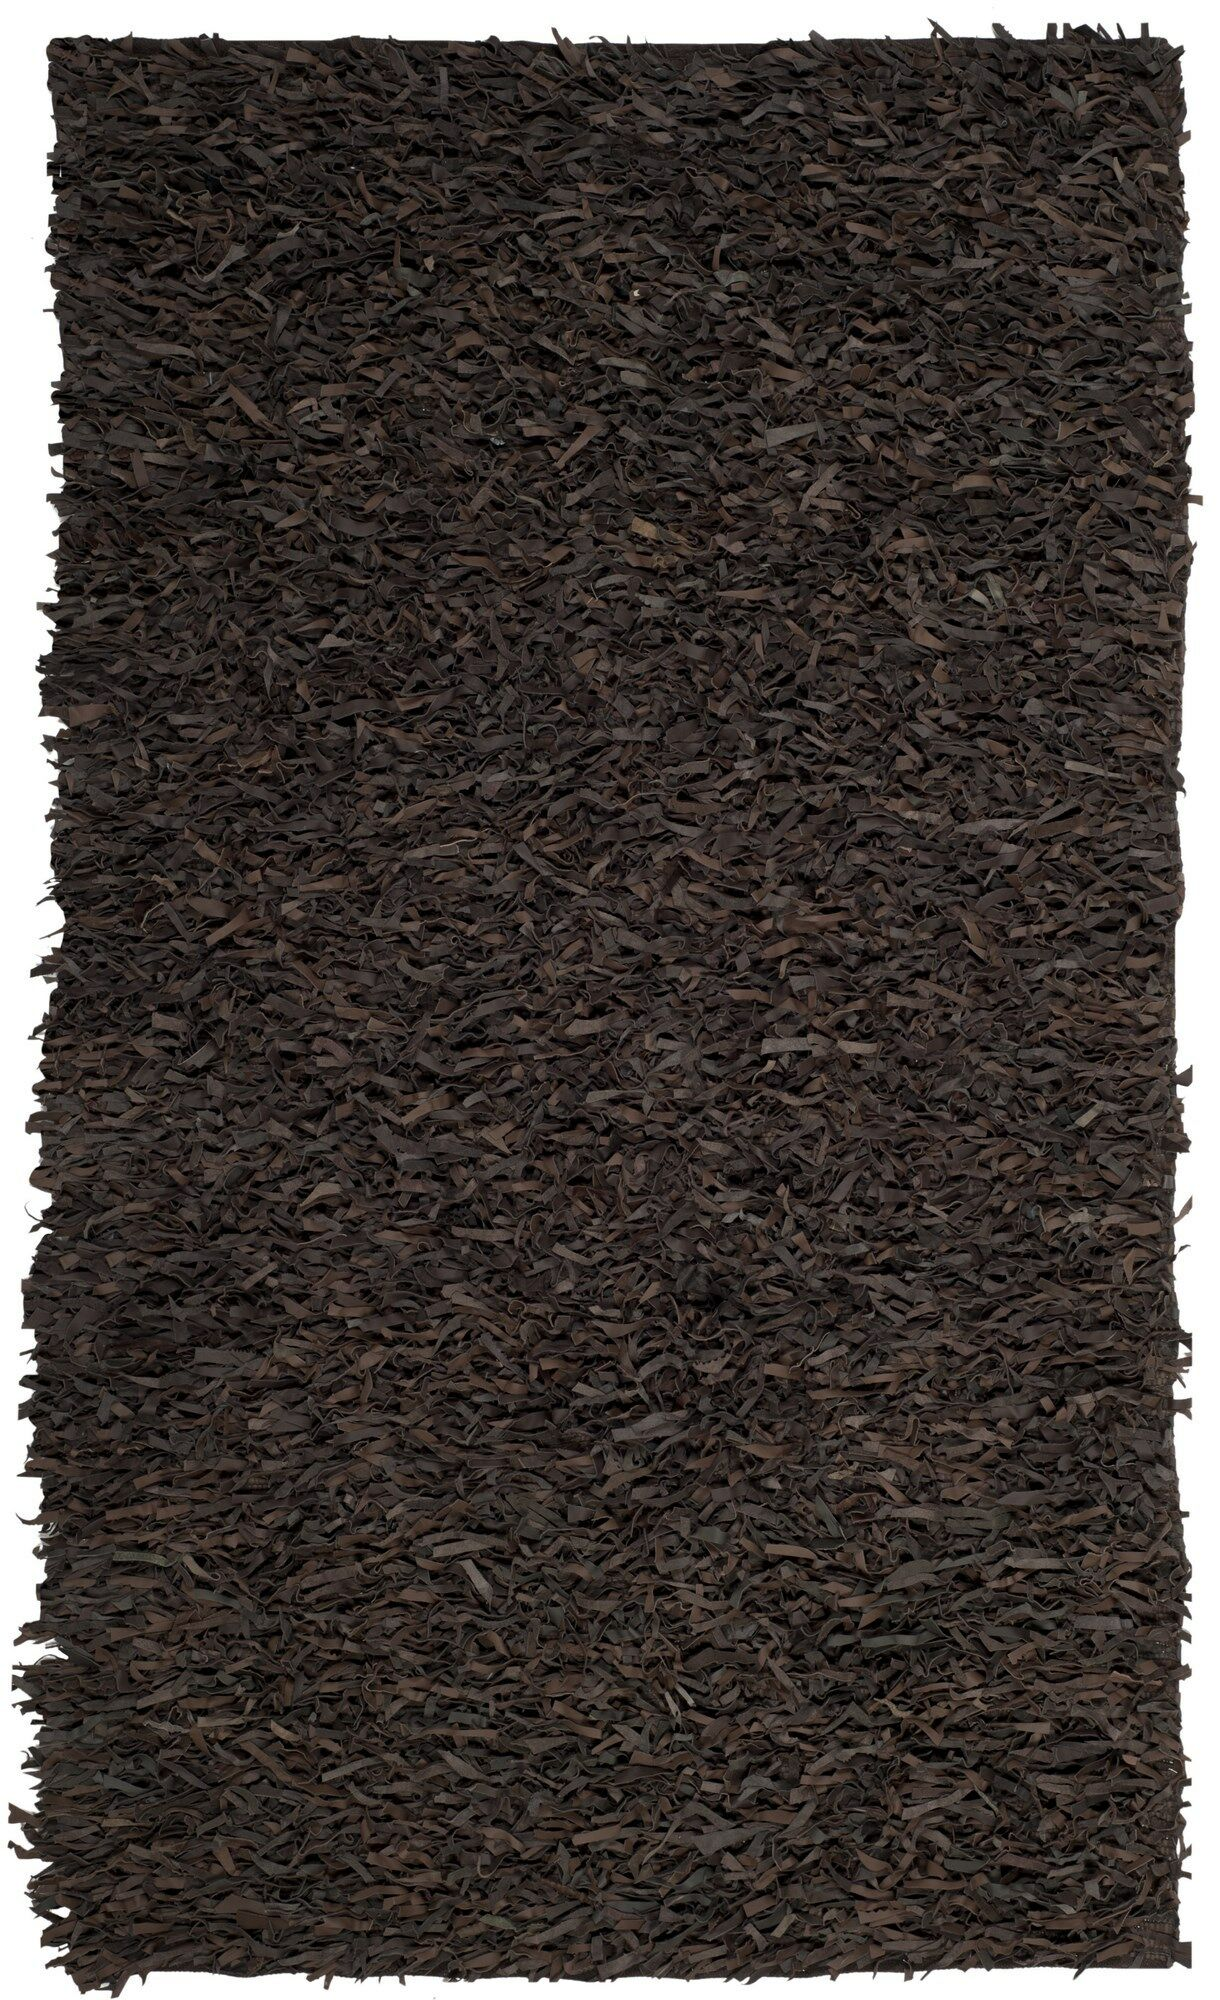 Albany Hand-Knotted Dark Brown Area Rug Rug Size: Rectangle 5' x 8'